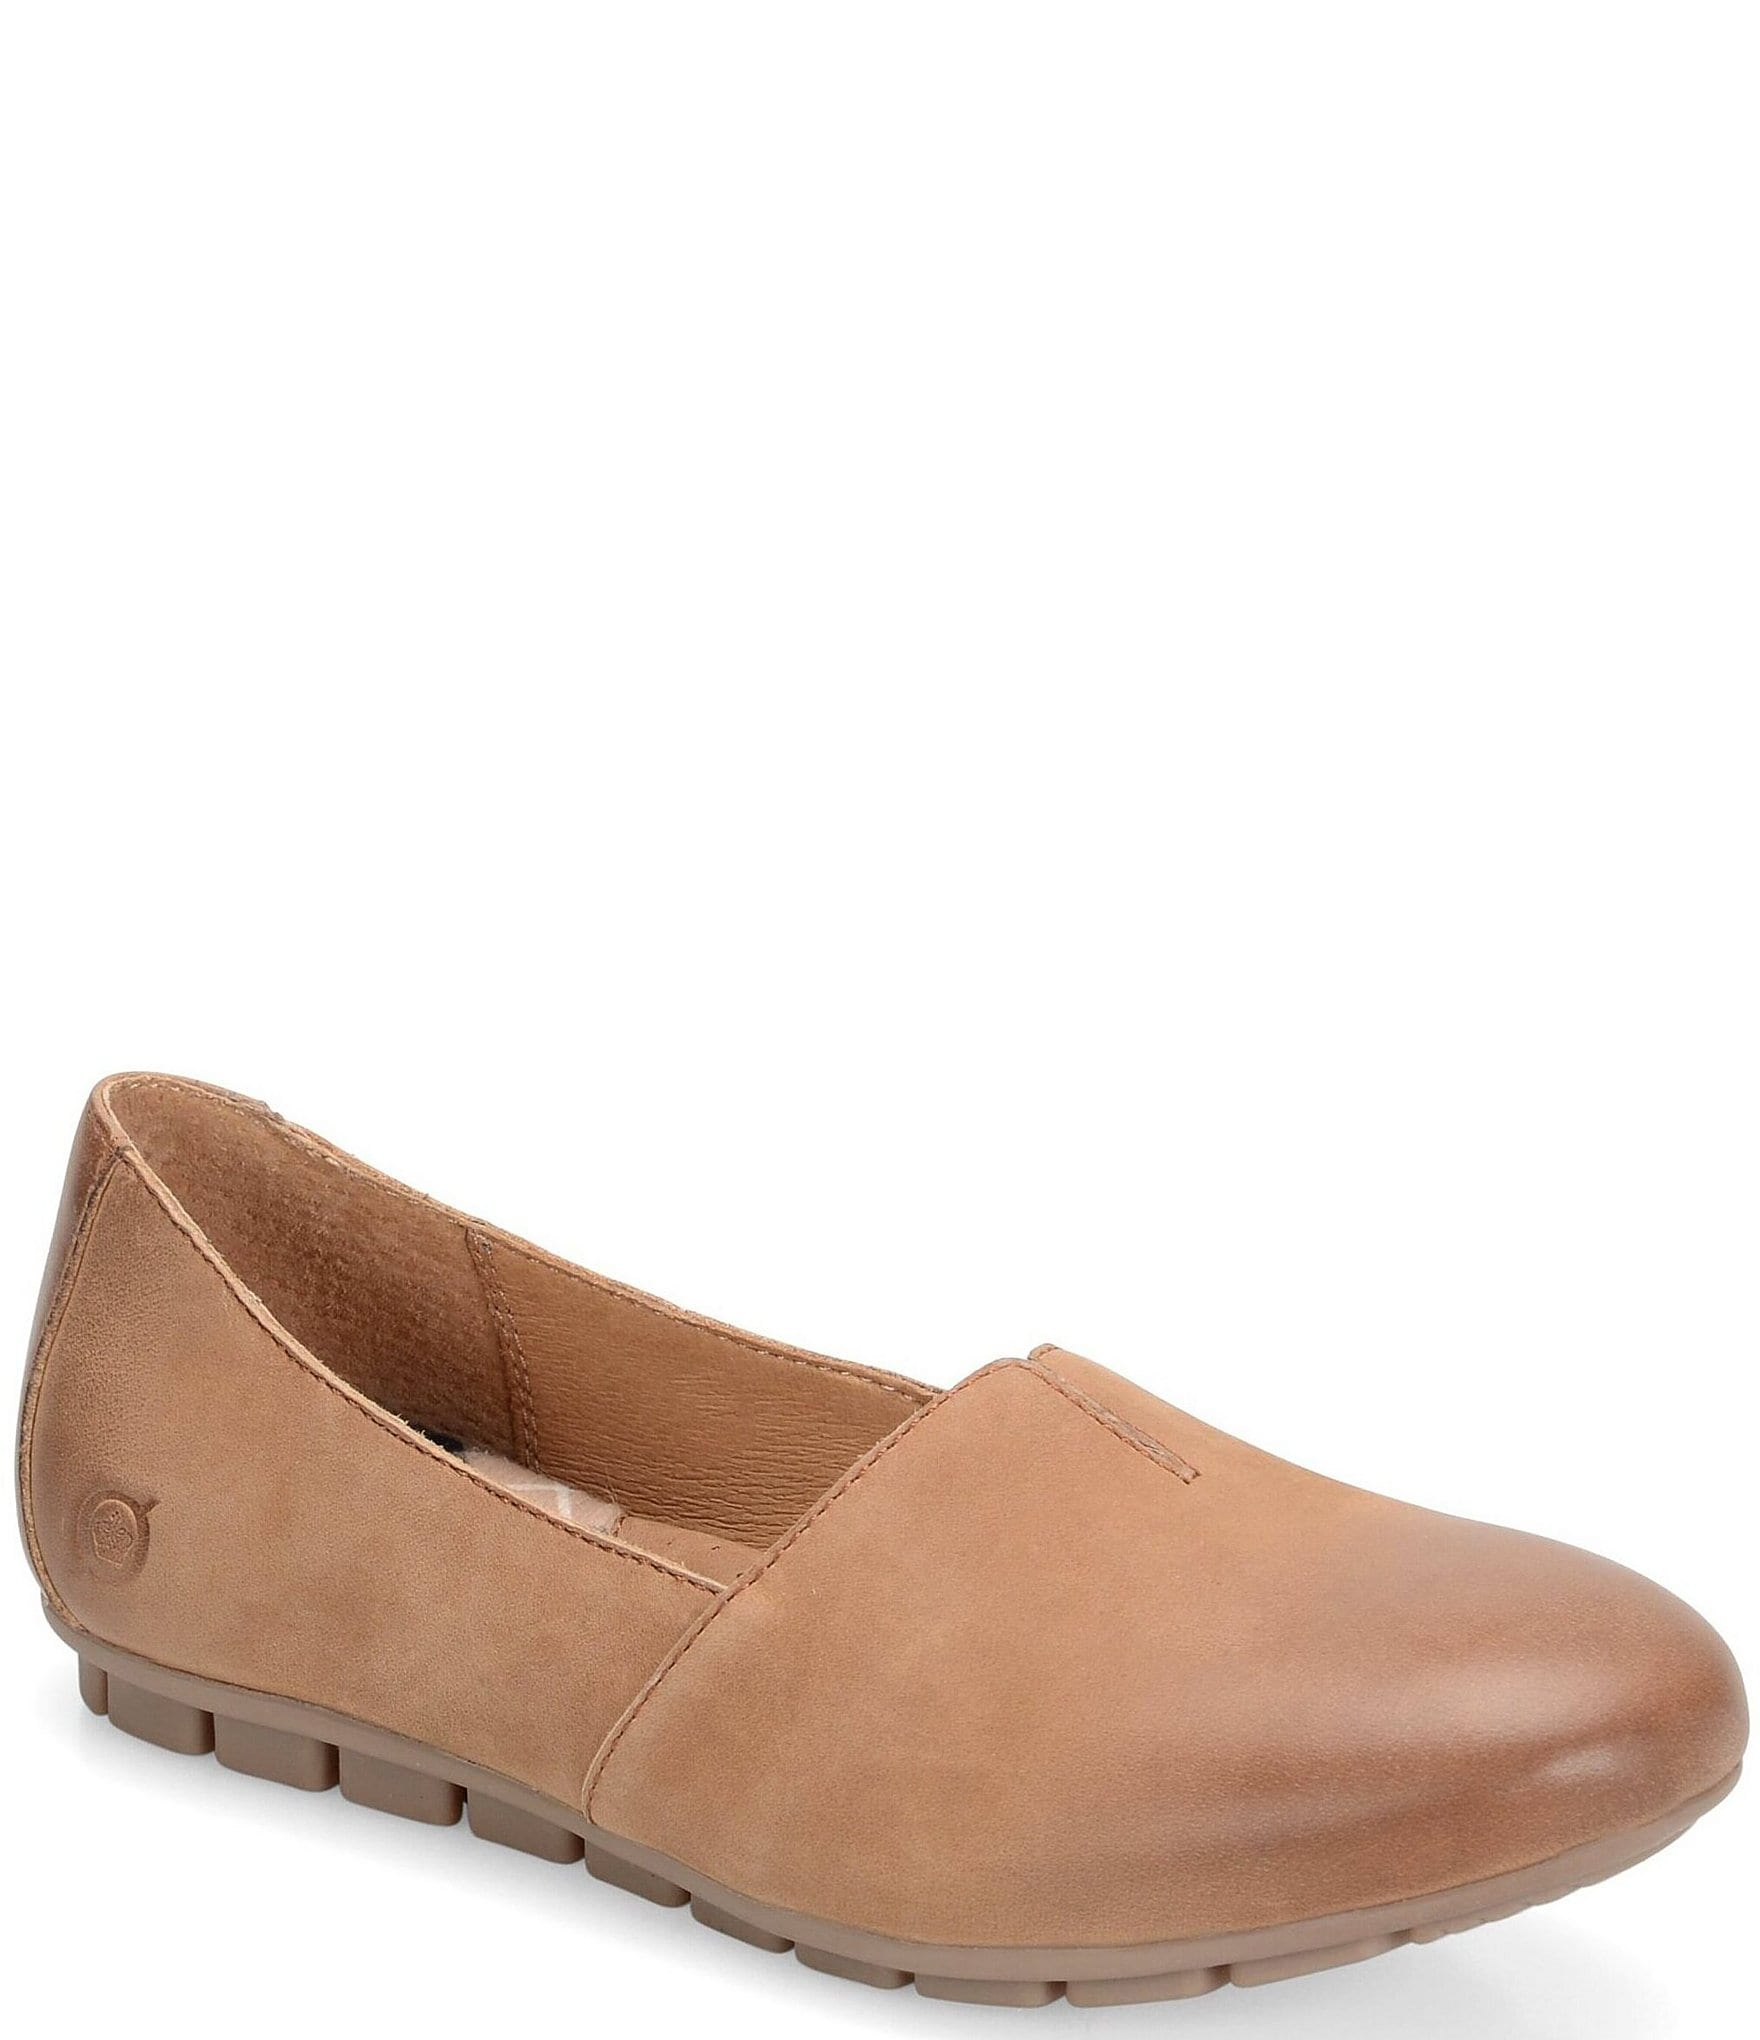 Born Women's Extended Size Shoes